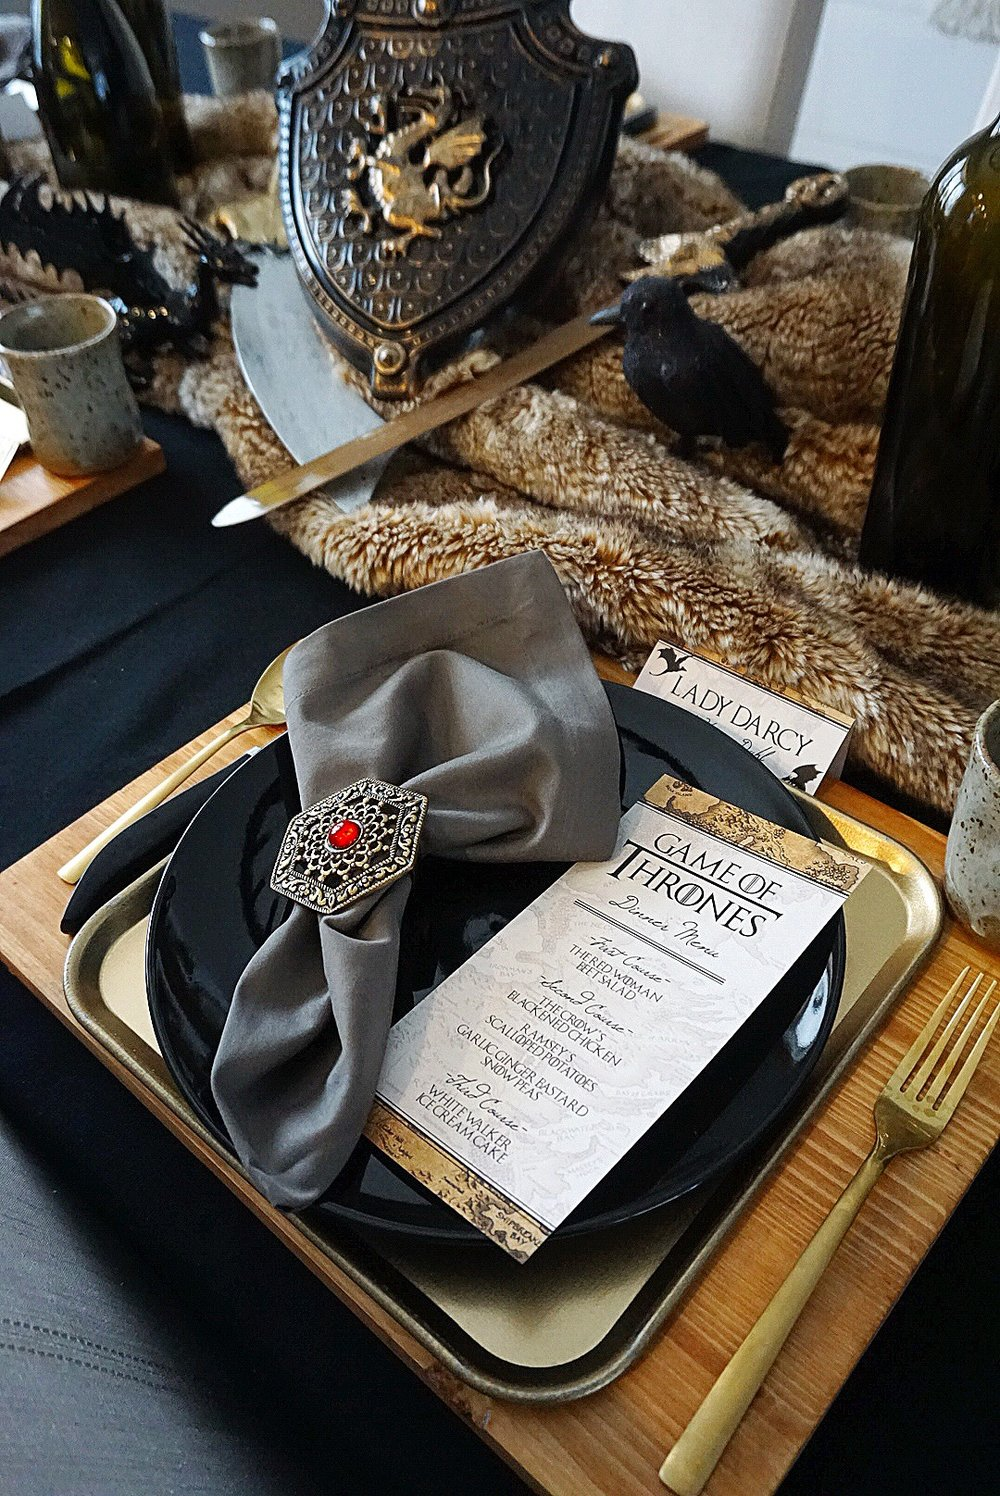 Game of Thrones dinner party complete with a themed menu.